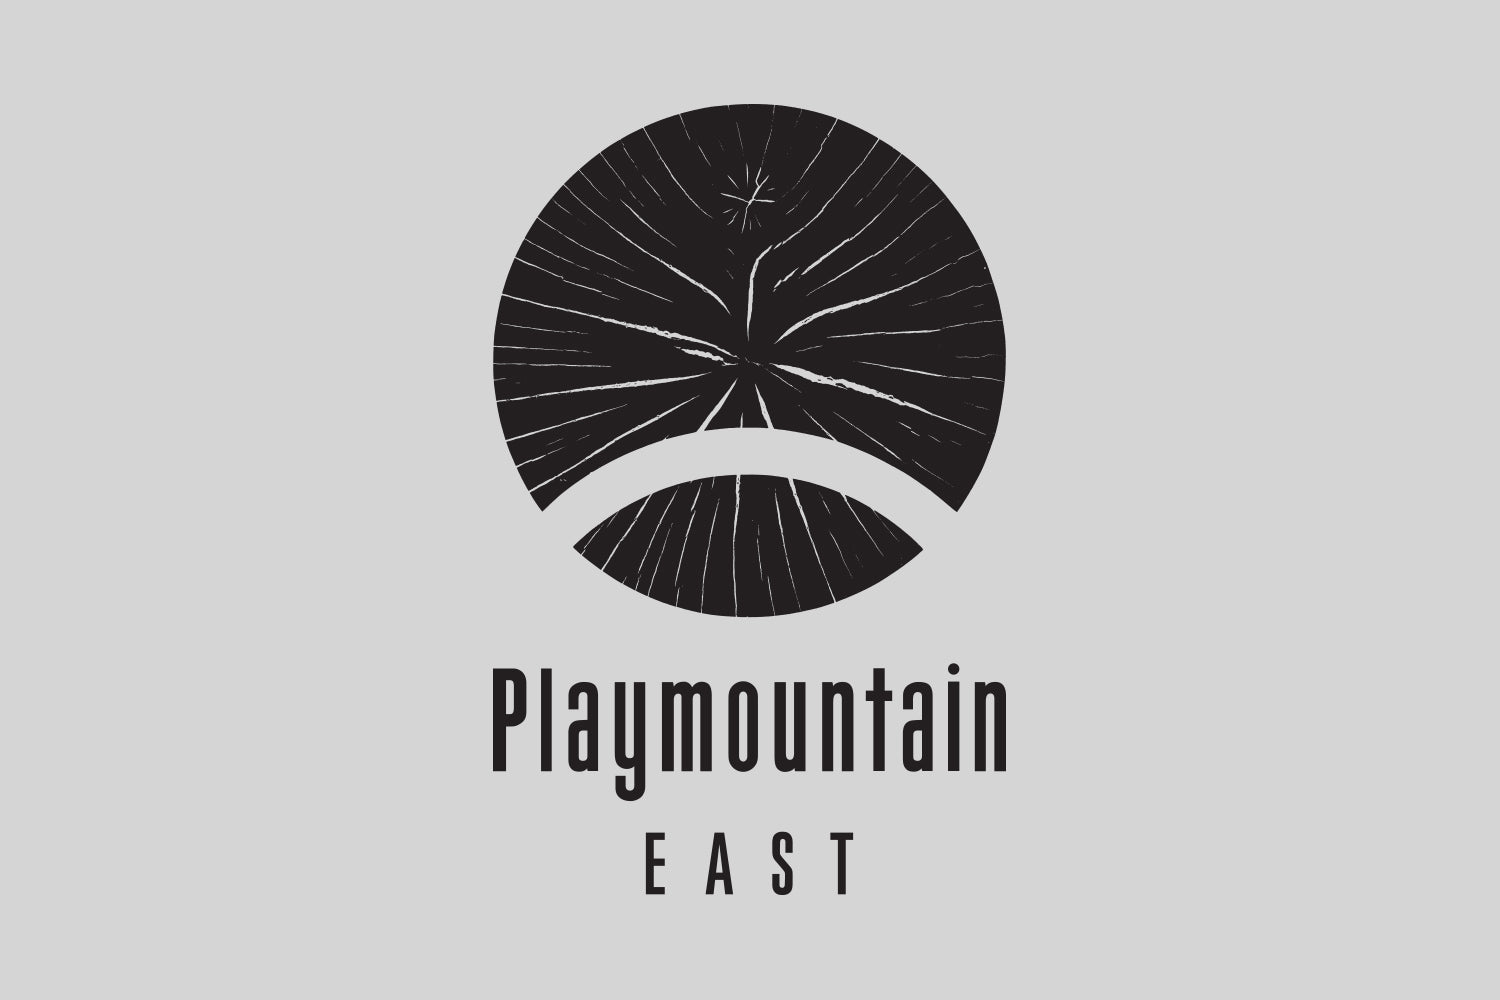 Playmountain East Boiler Room Sf